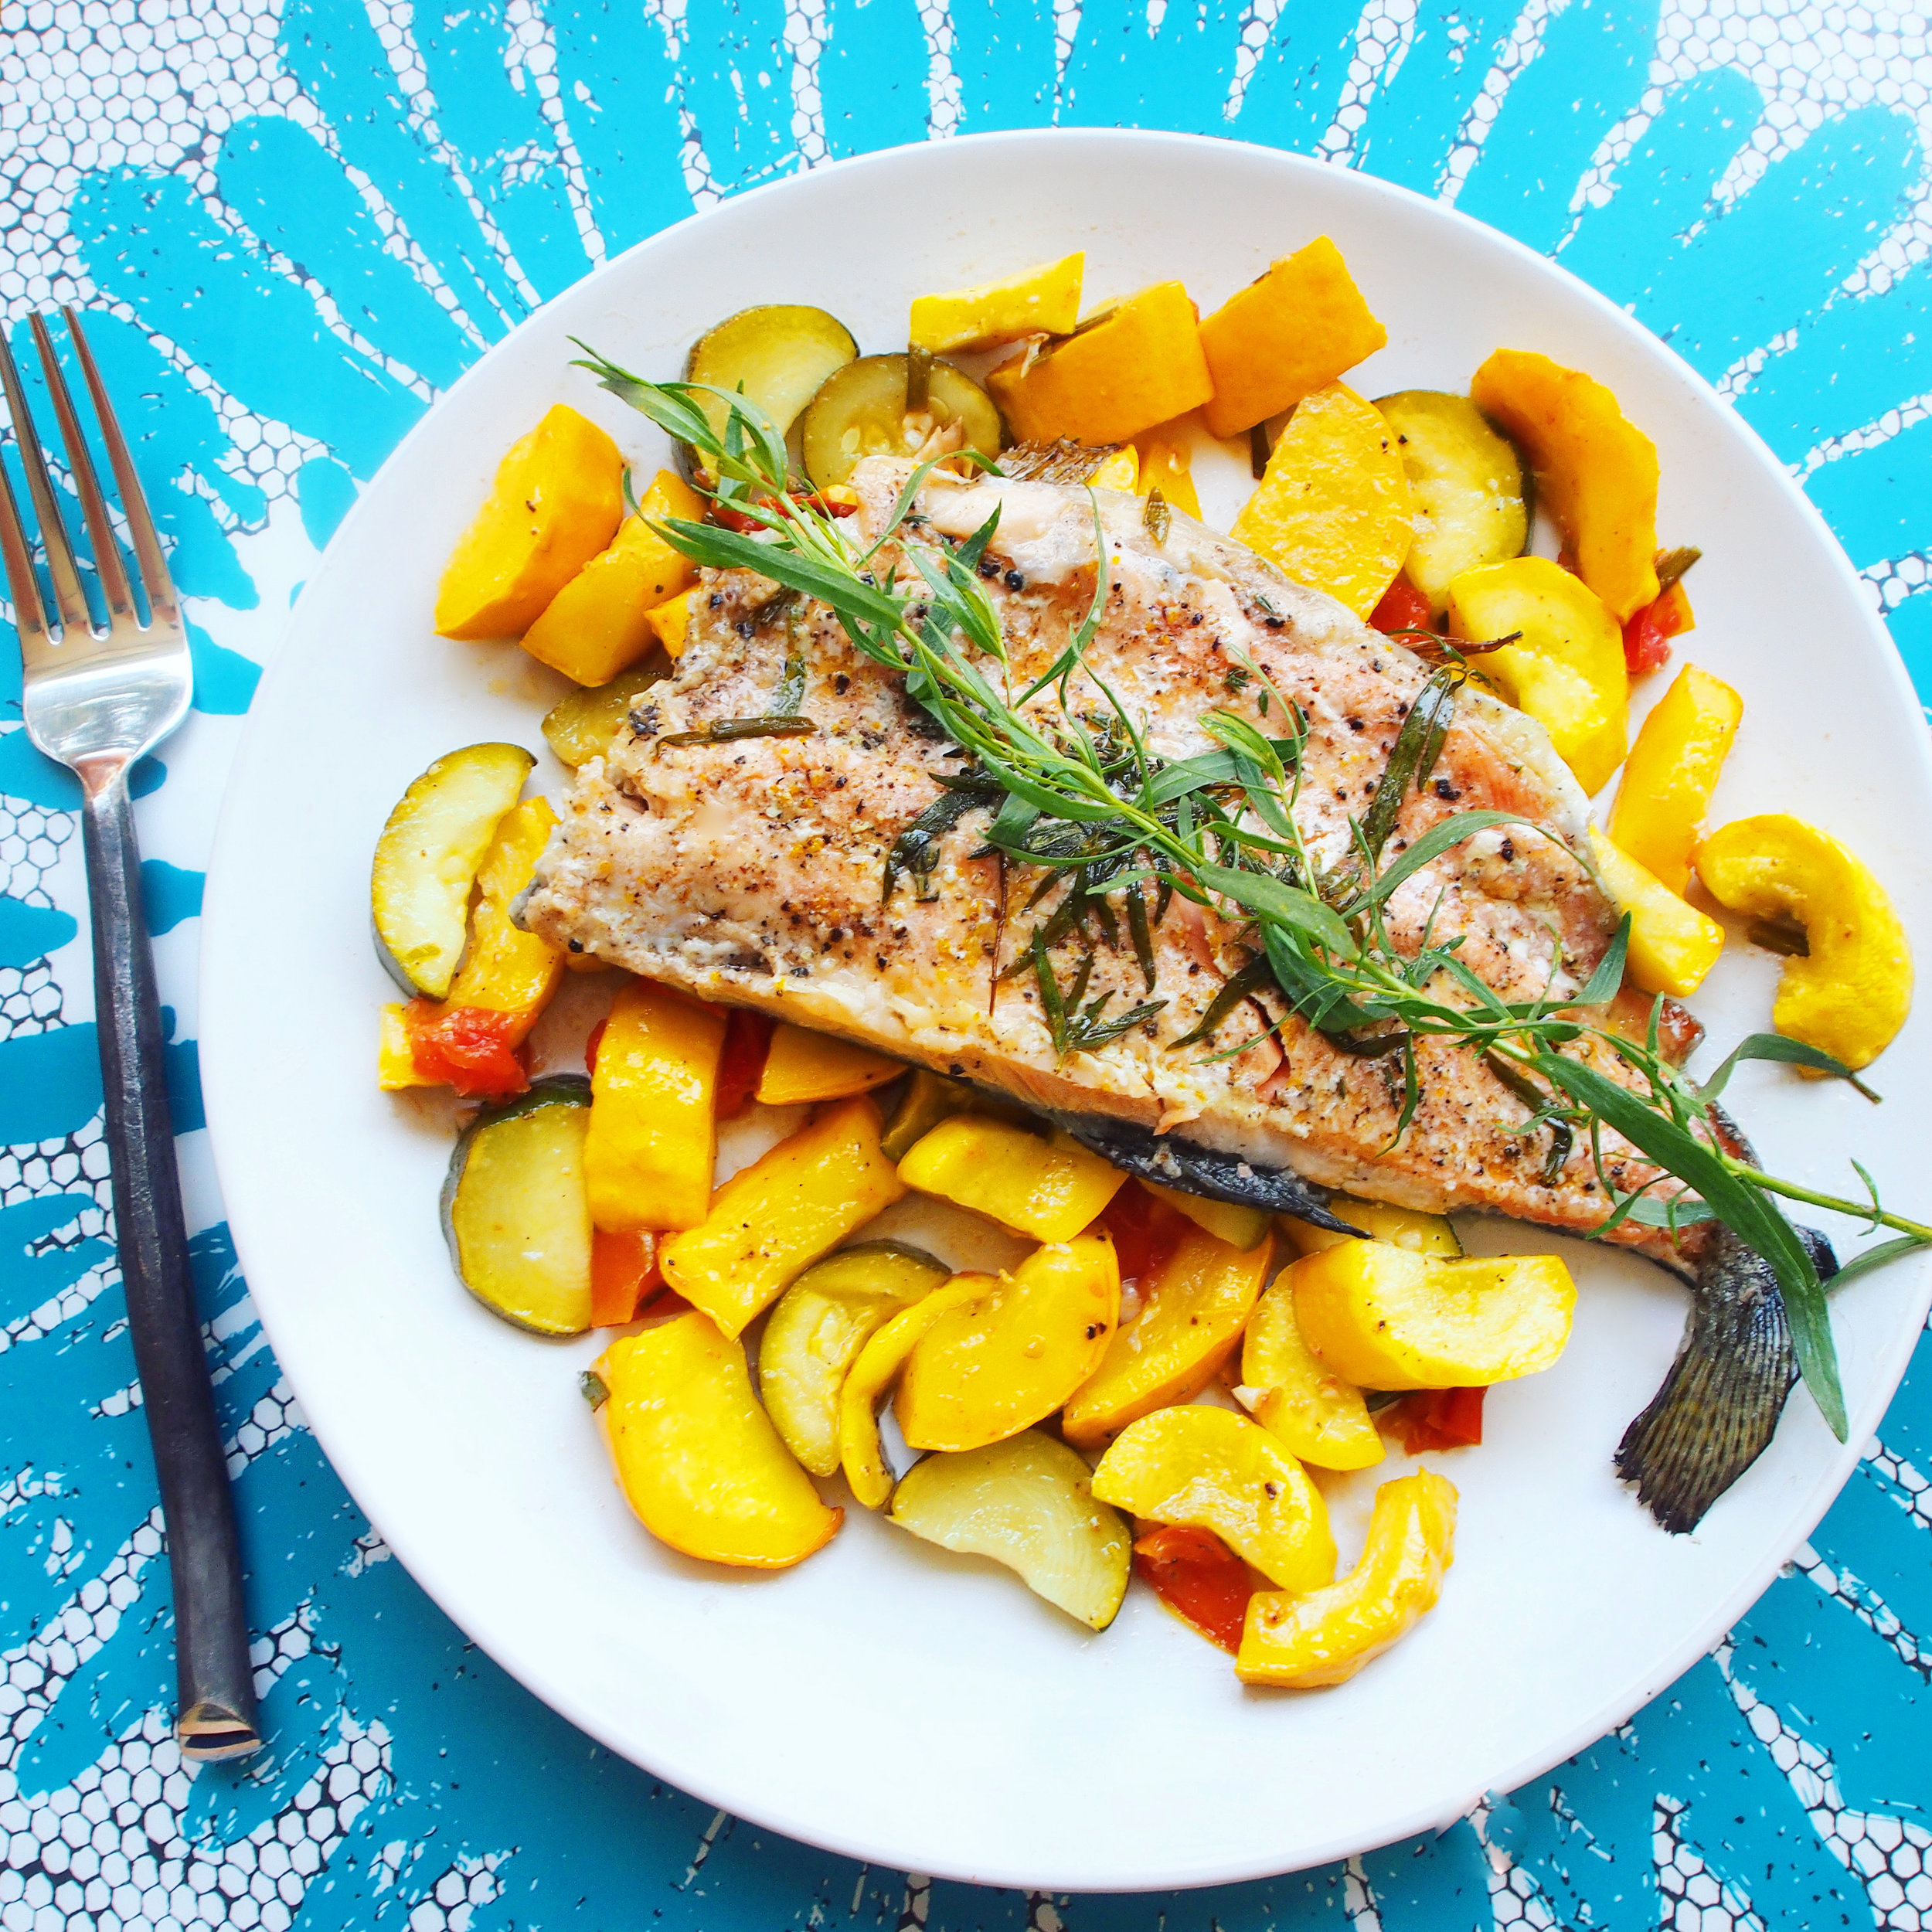 This quick and easy trout recipe has summer herbs and summer squash. Zucchini can be used to substitute the summer squash. Trout is a healthy ingredient choice in any recipe to help get your protein and omega 3s!